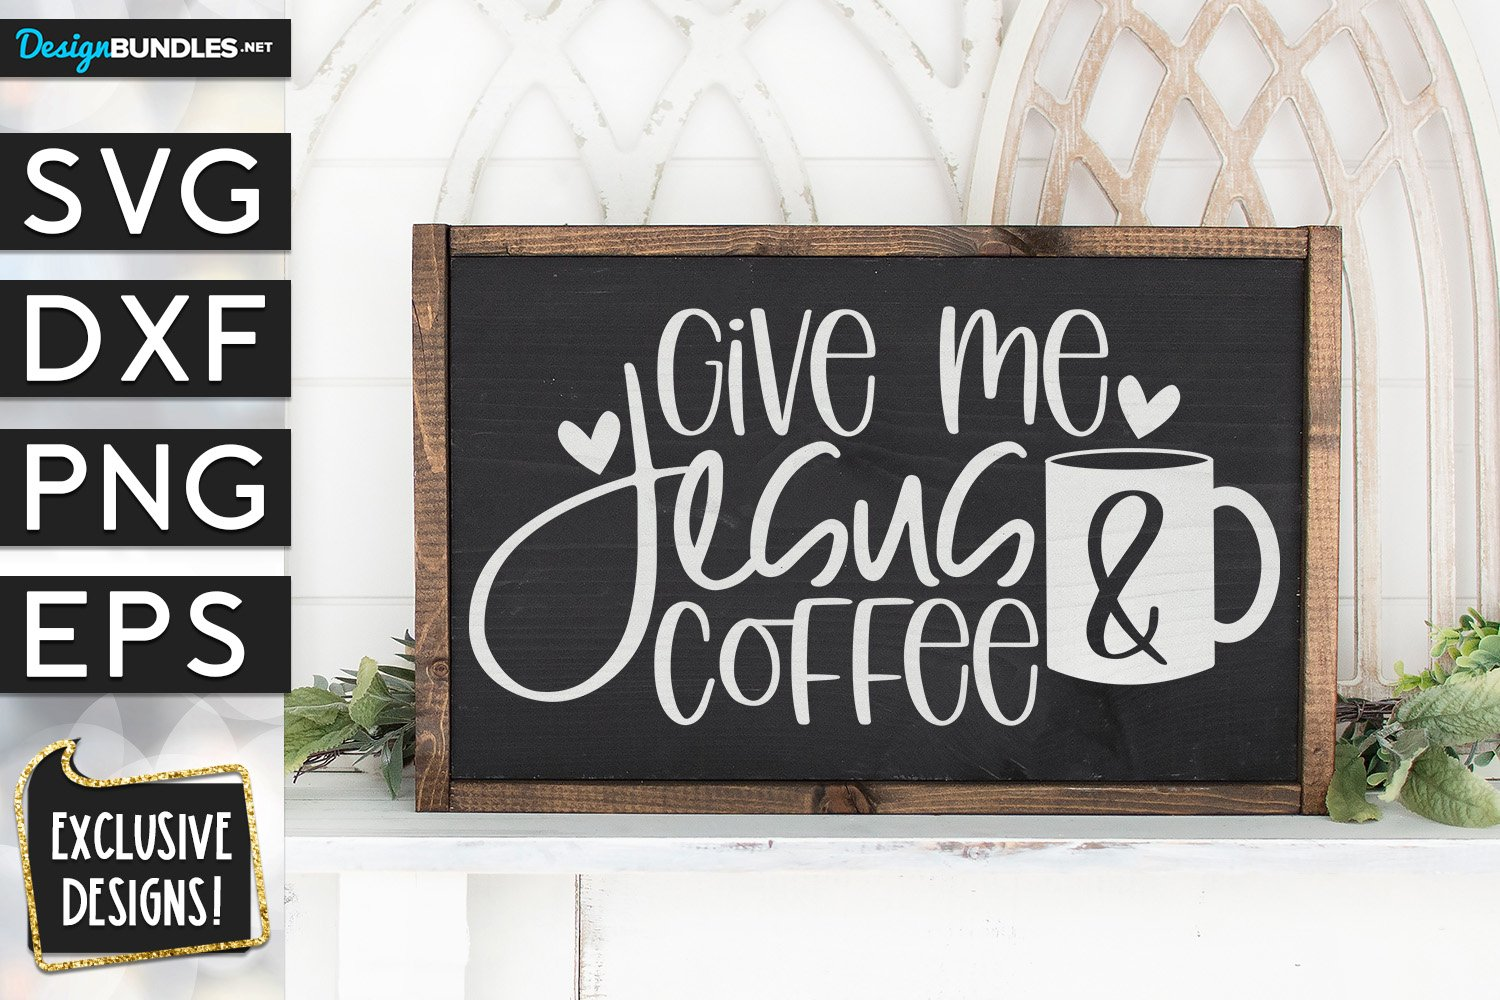 Give Me Jesus & Coffee SVG DXF PNG EPS example image 1